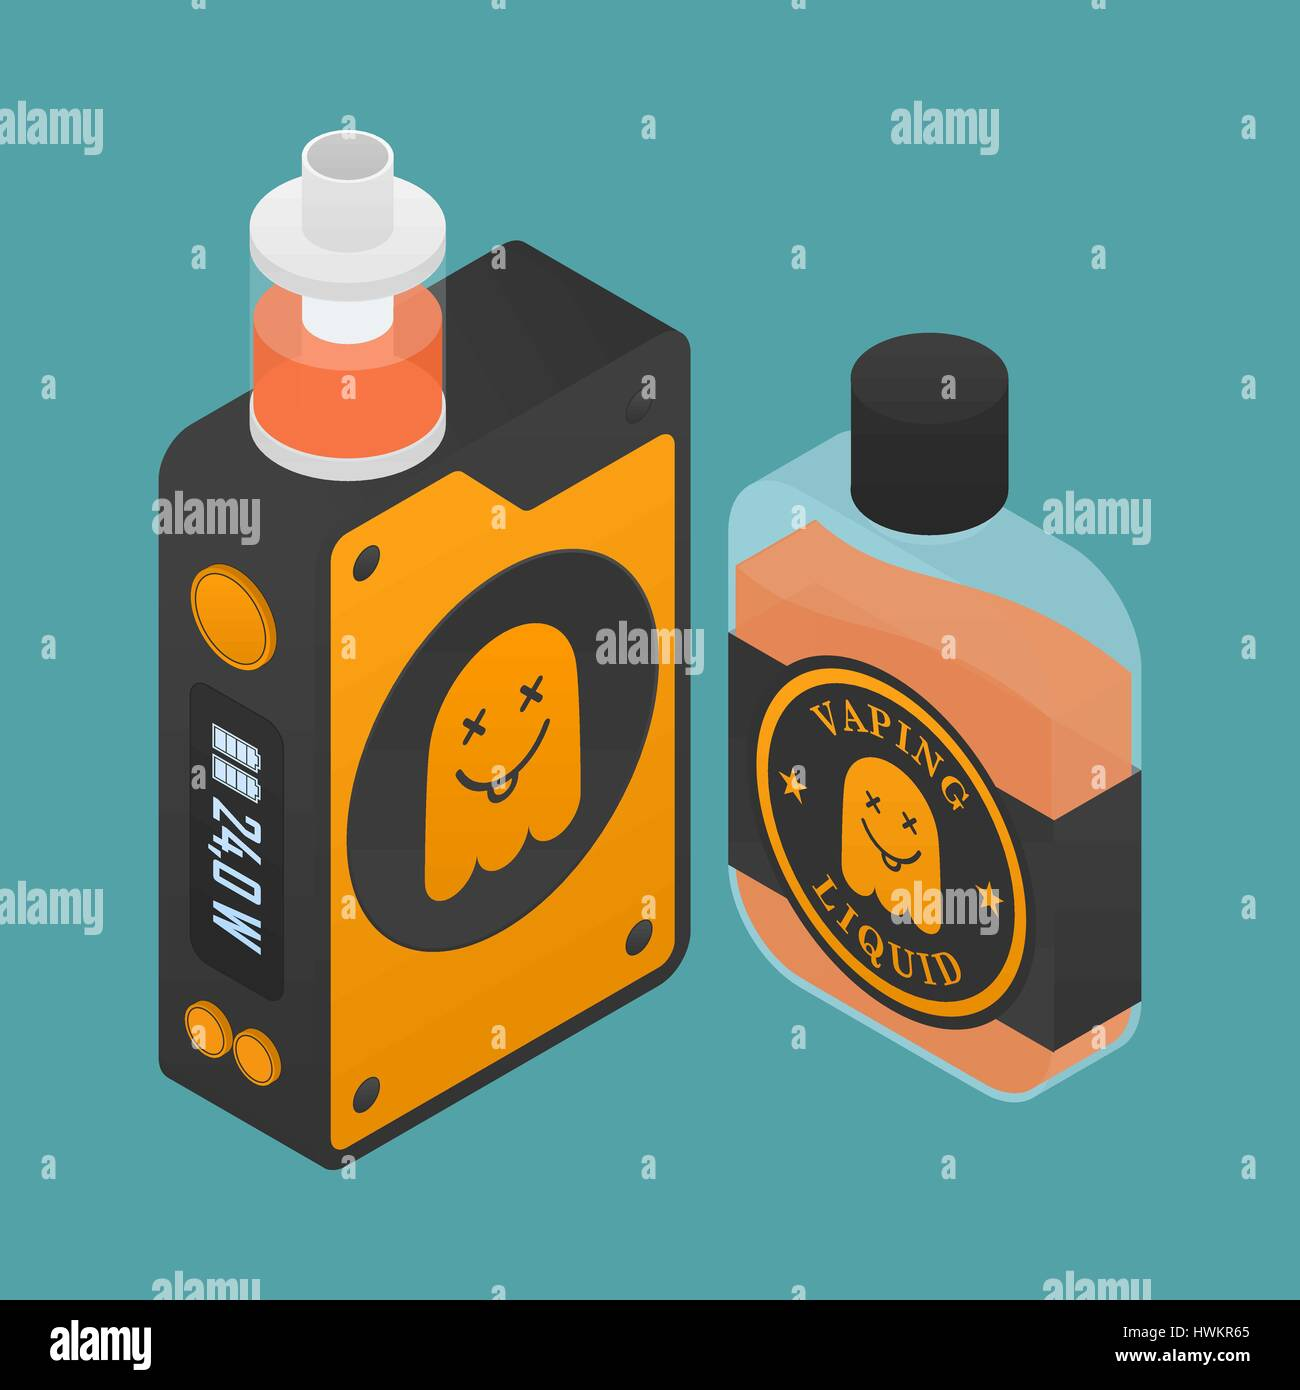 Isometric Icon of Vape device with ghost silhouette. Electronic cigarette with e-liquid bottle. Vector Vaping symbol. - Stock Image